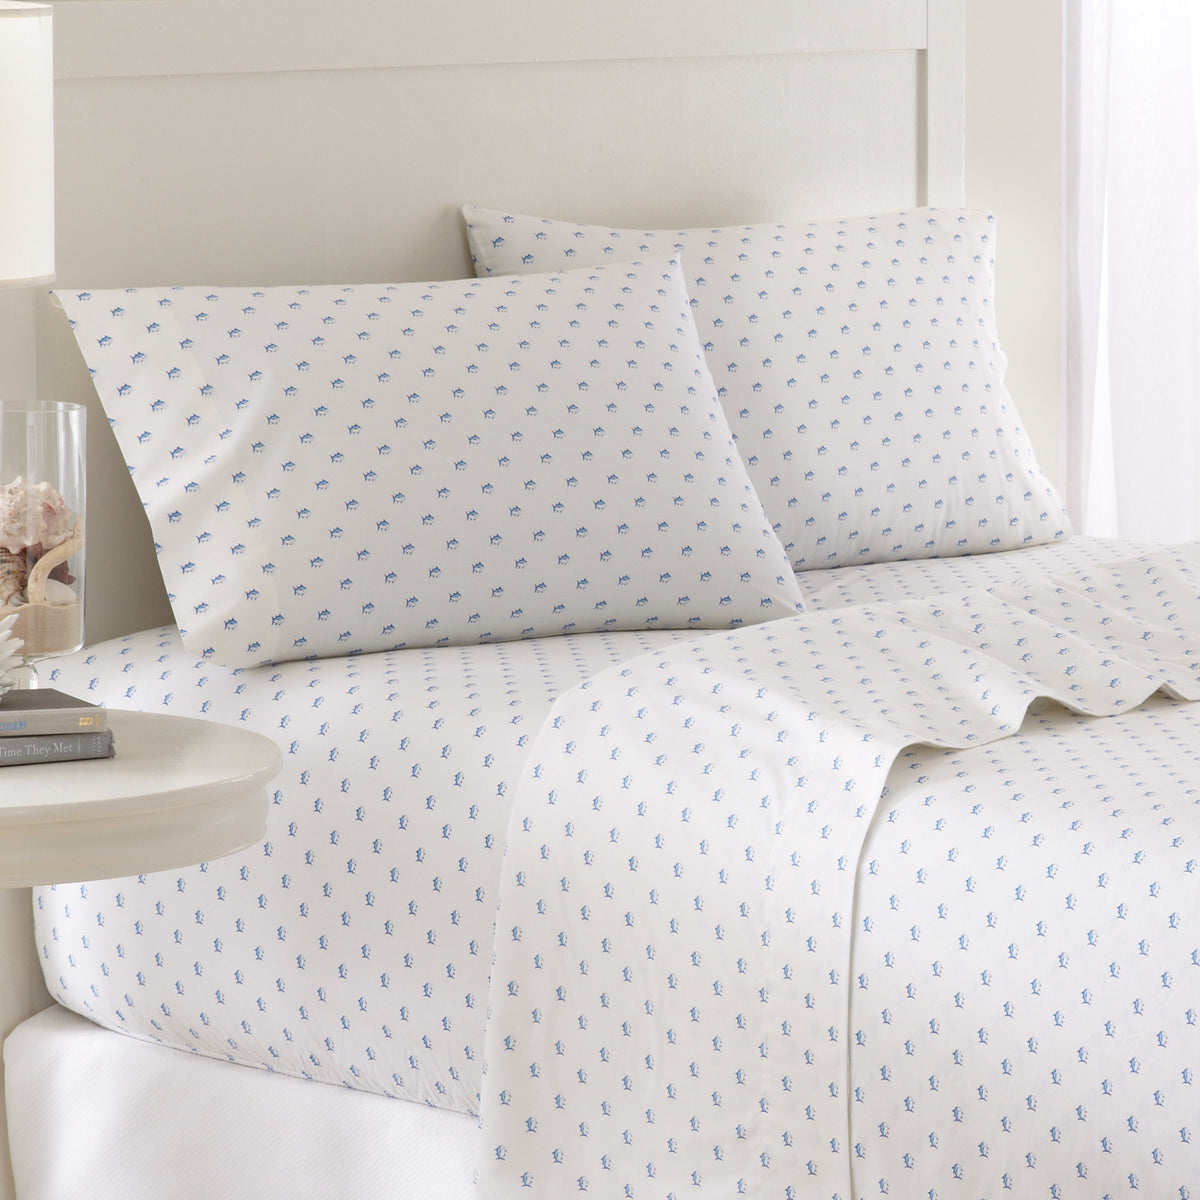 Southern Tide Printed Skipjack Cotton Sheet Set